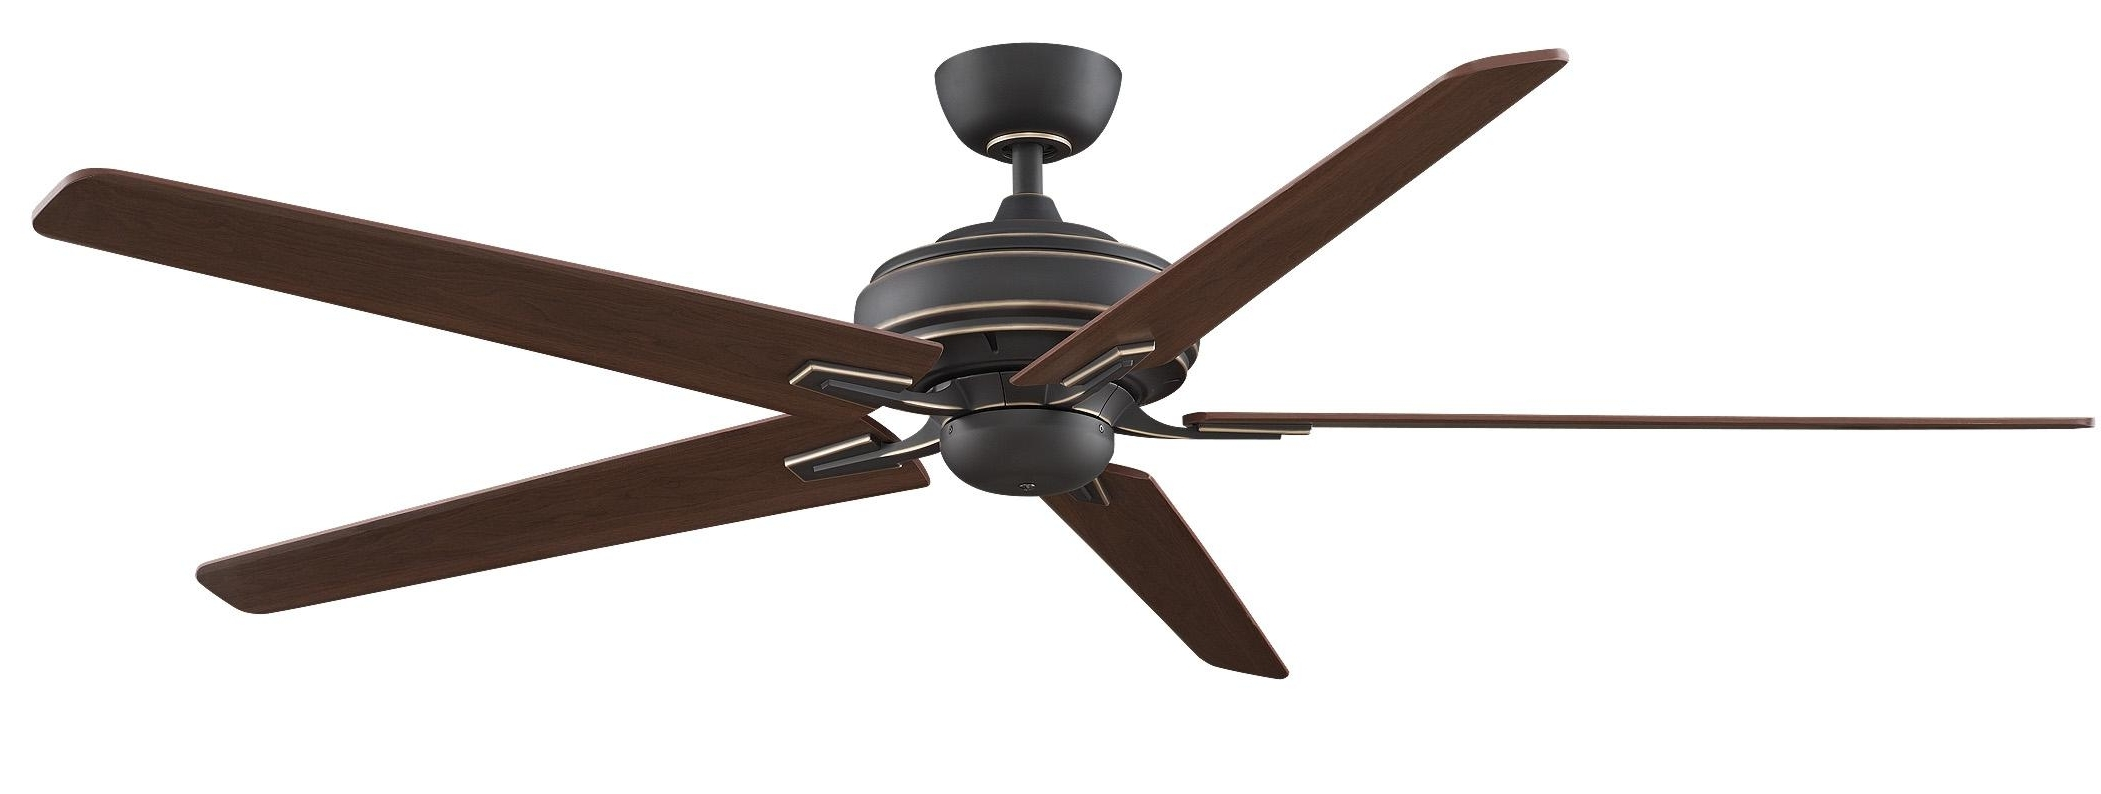 Favorite Inch Outdoor Ceiling Fan With 60 Ceiling Fan With Light With Regard To 72 Inch Outdoor Ceiling Fans (View 14 of 20)